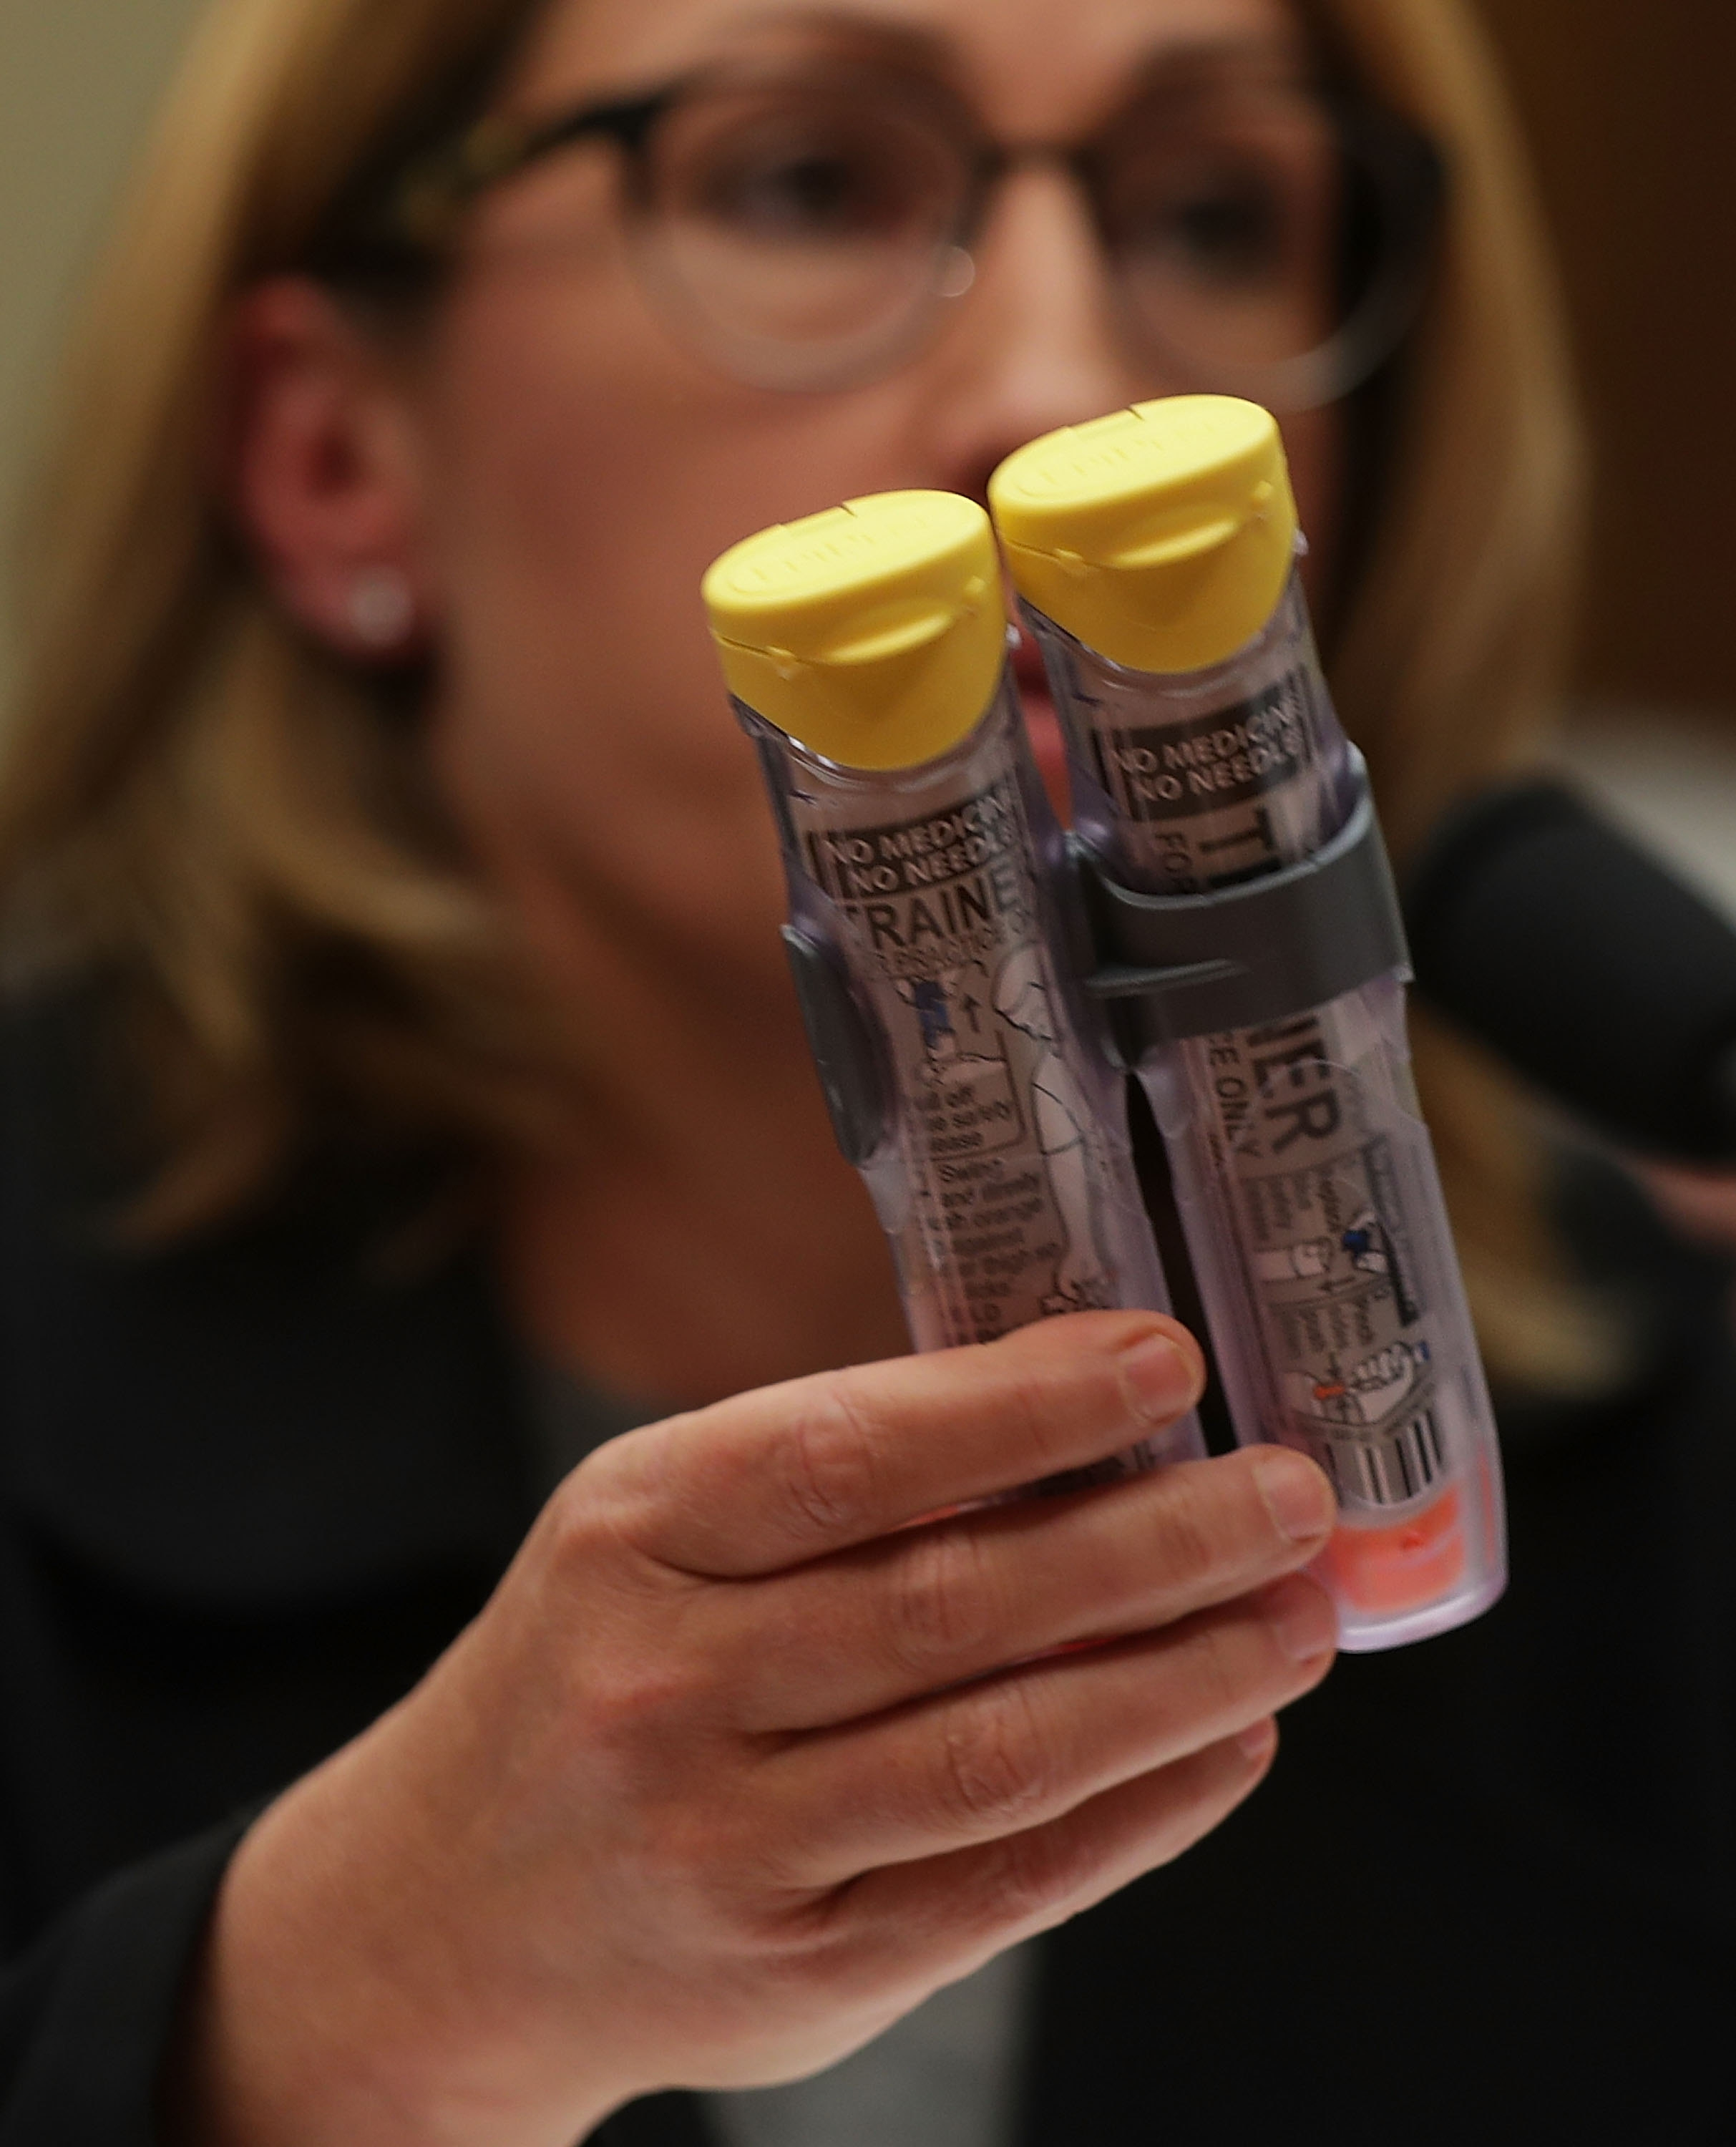 """WASHINGTON, DC - SEPTEMBER 21:  Mylan Inc. CEO Heather Bresch holds up a 2-pack of EpiPen as she testifies during a hearing before the House Oversight and Government Reform Committee September 21, 2016 on Capitol Hill in Washington, DC. The committee held a hearing on """"Reviewing the Rising Price of EpiPens.""""  (Photo by Alex Wong/Getty Images)"""